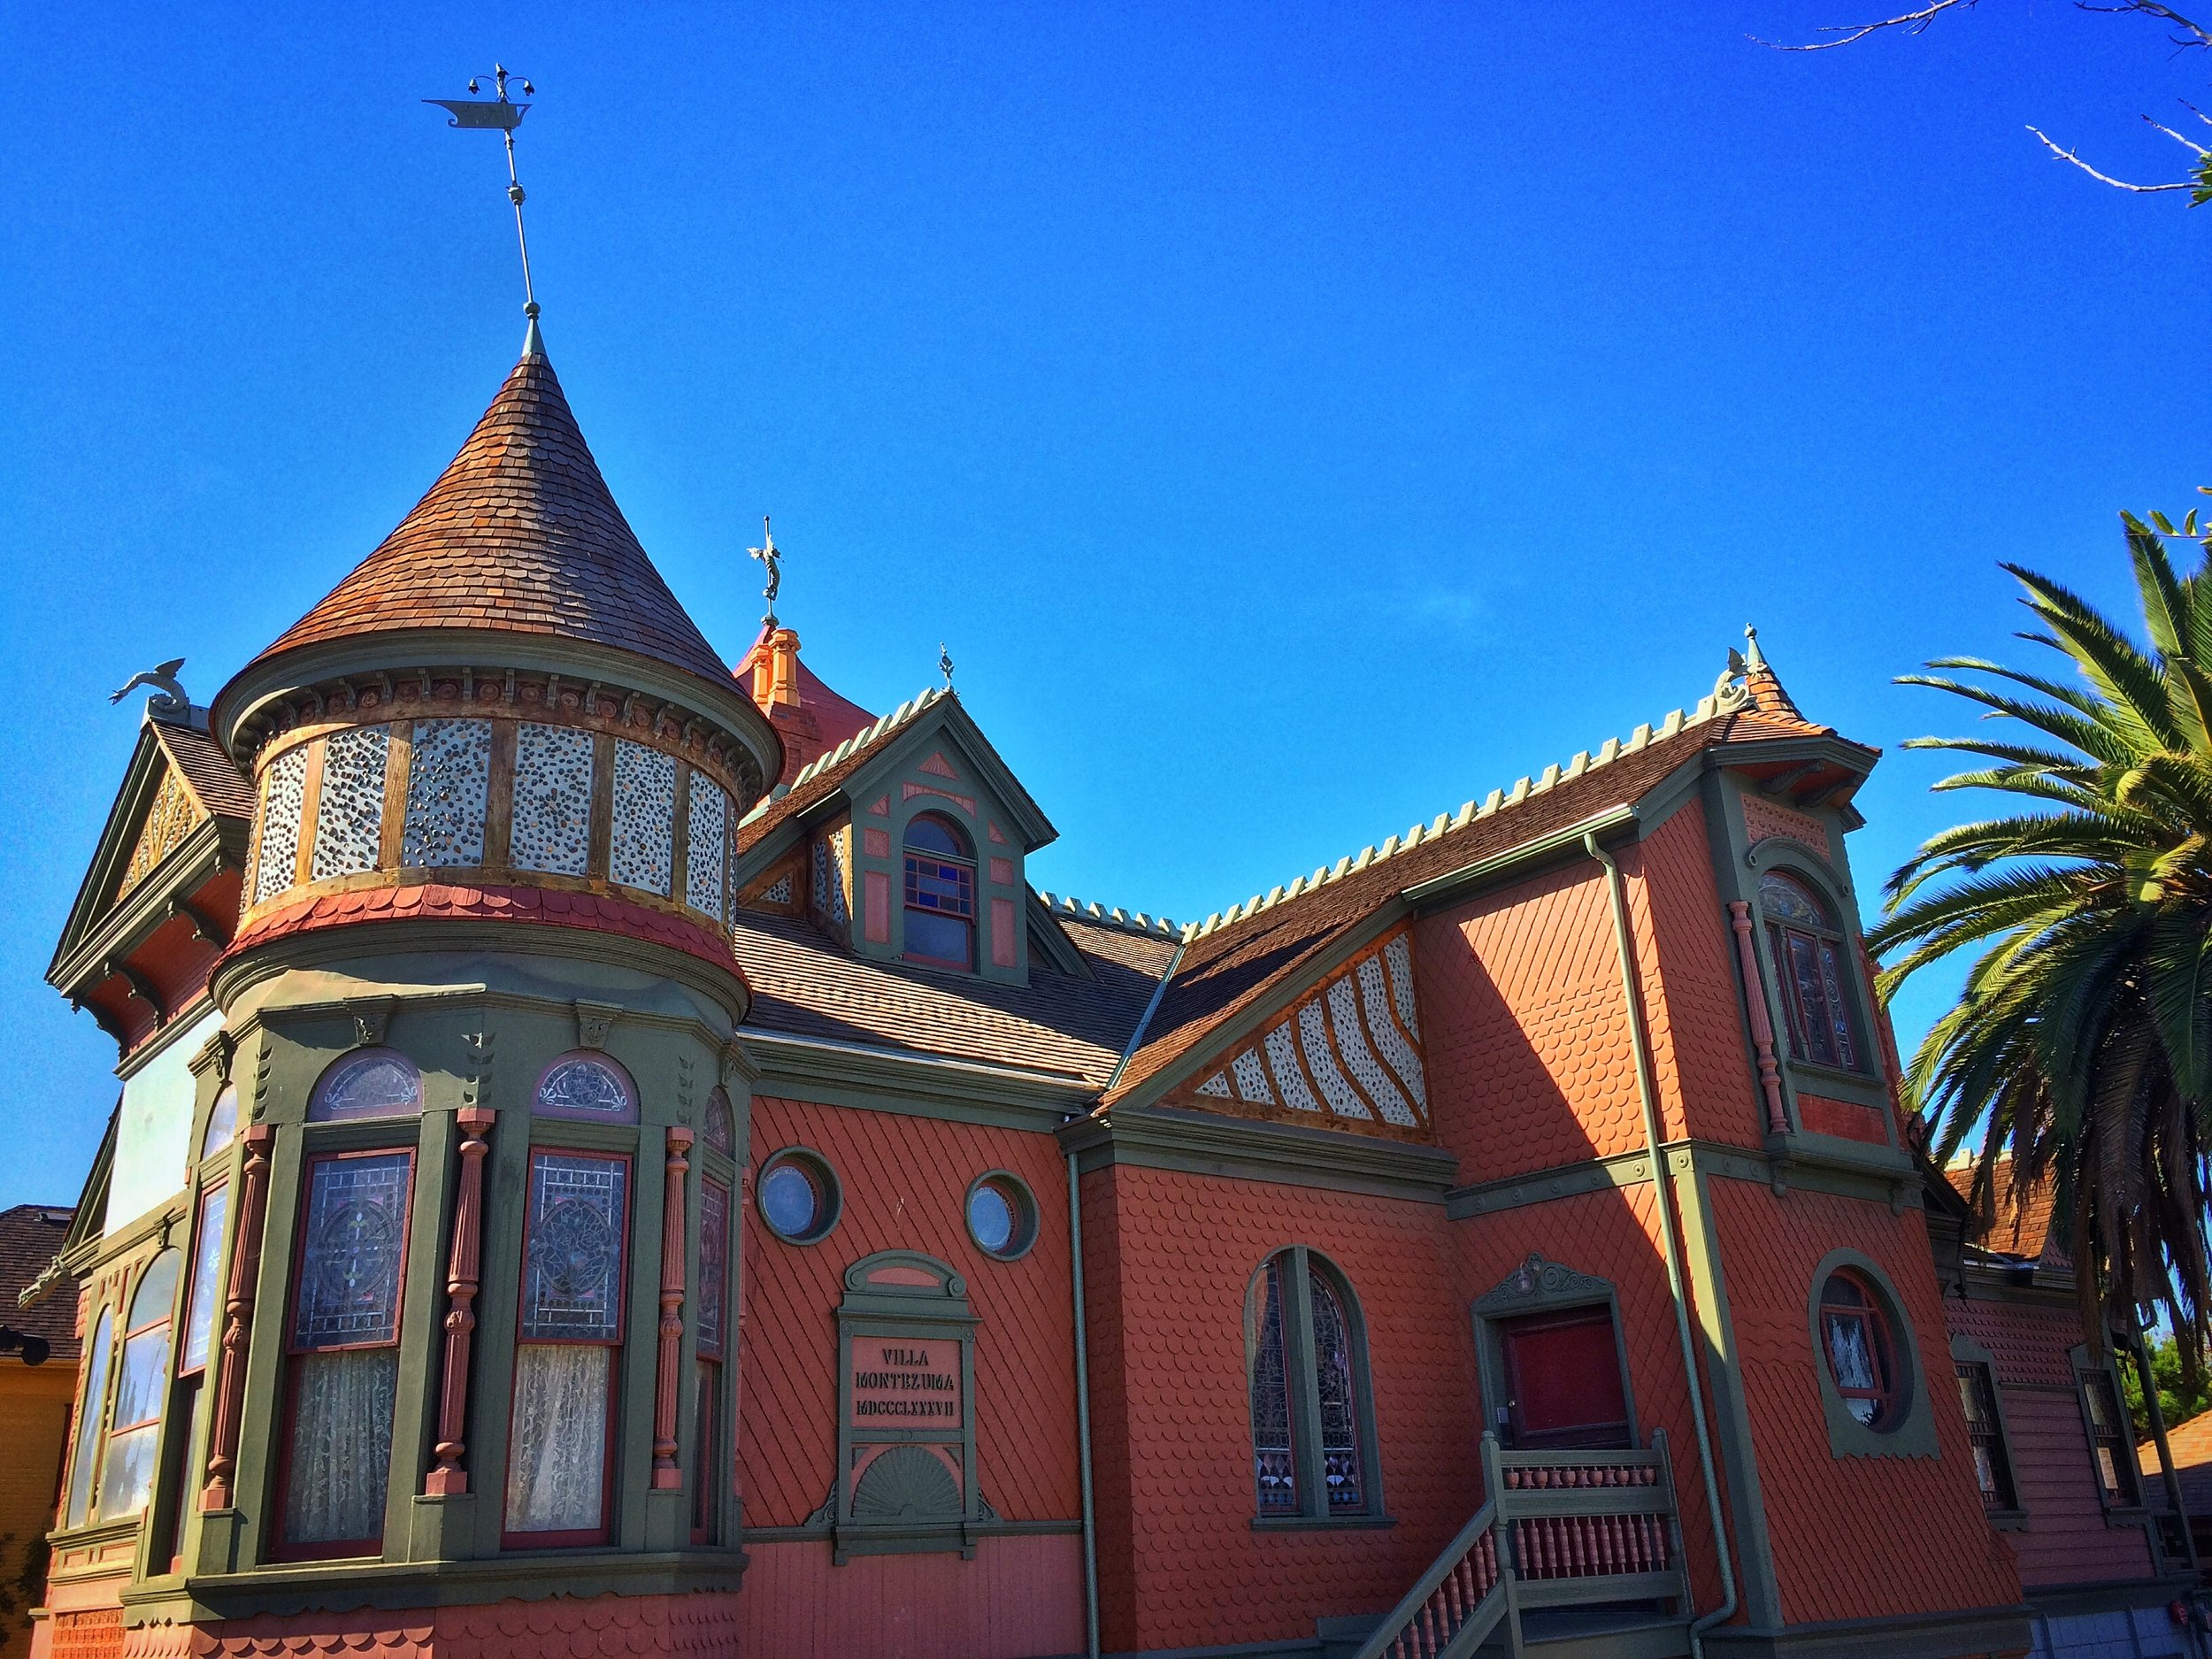 """Villa Montezuma, closed for years, now open, formerly home to """"otherworldly"""" performances."""